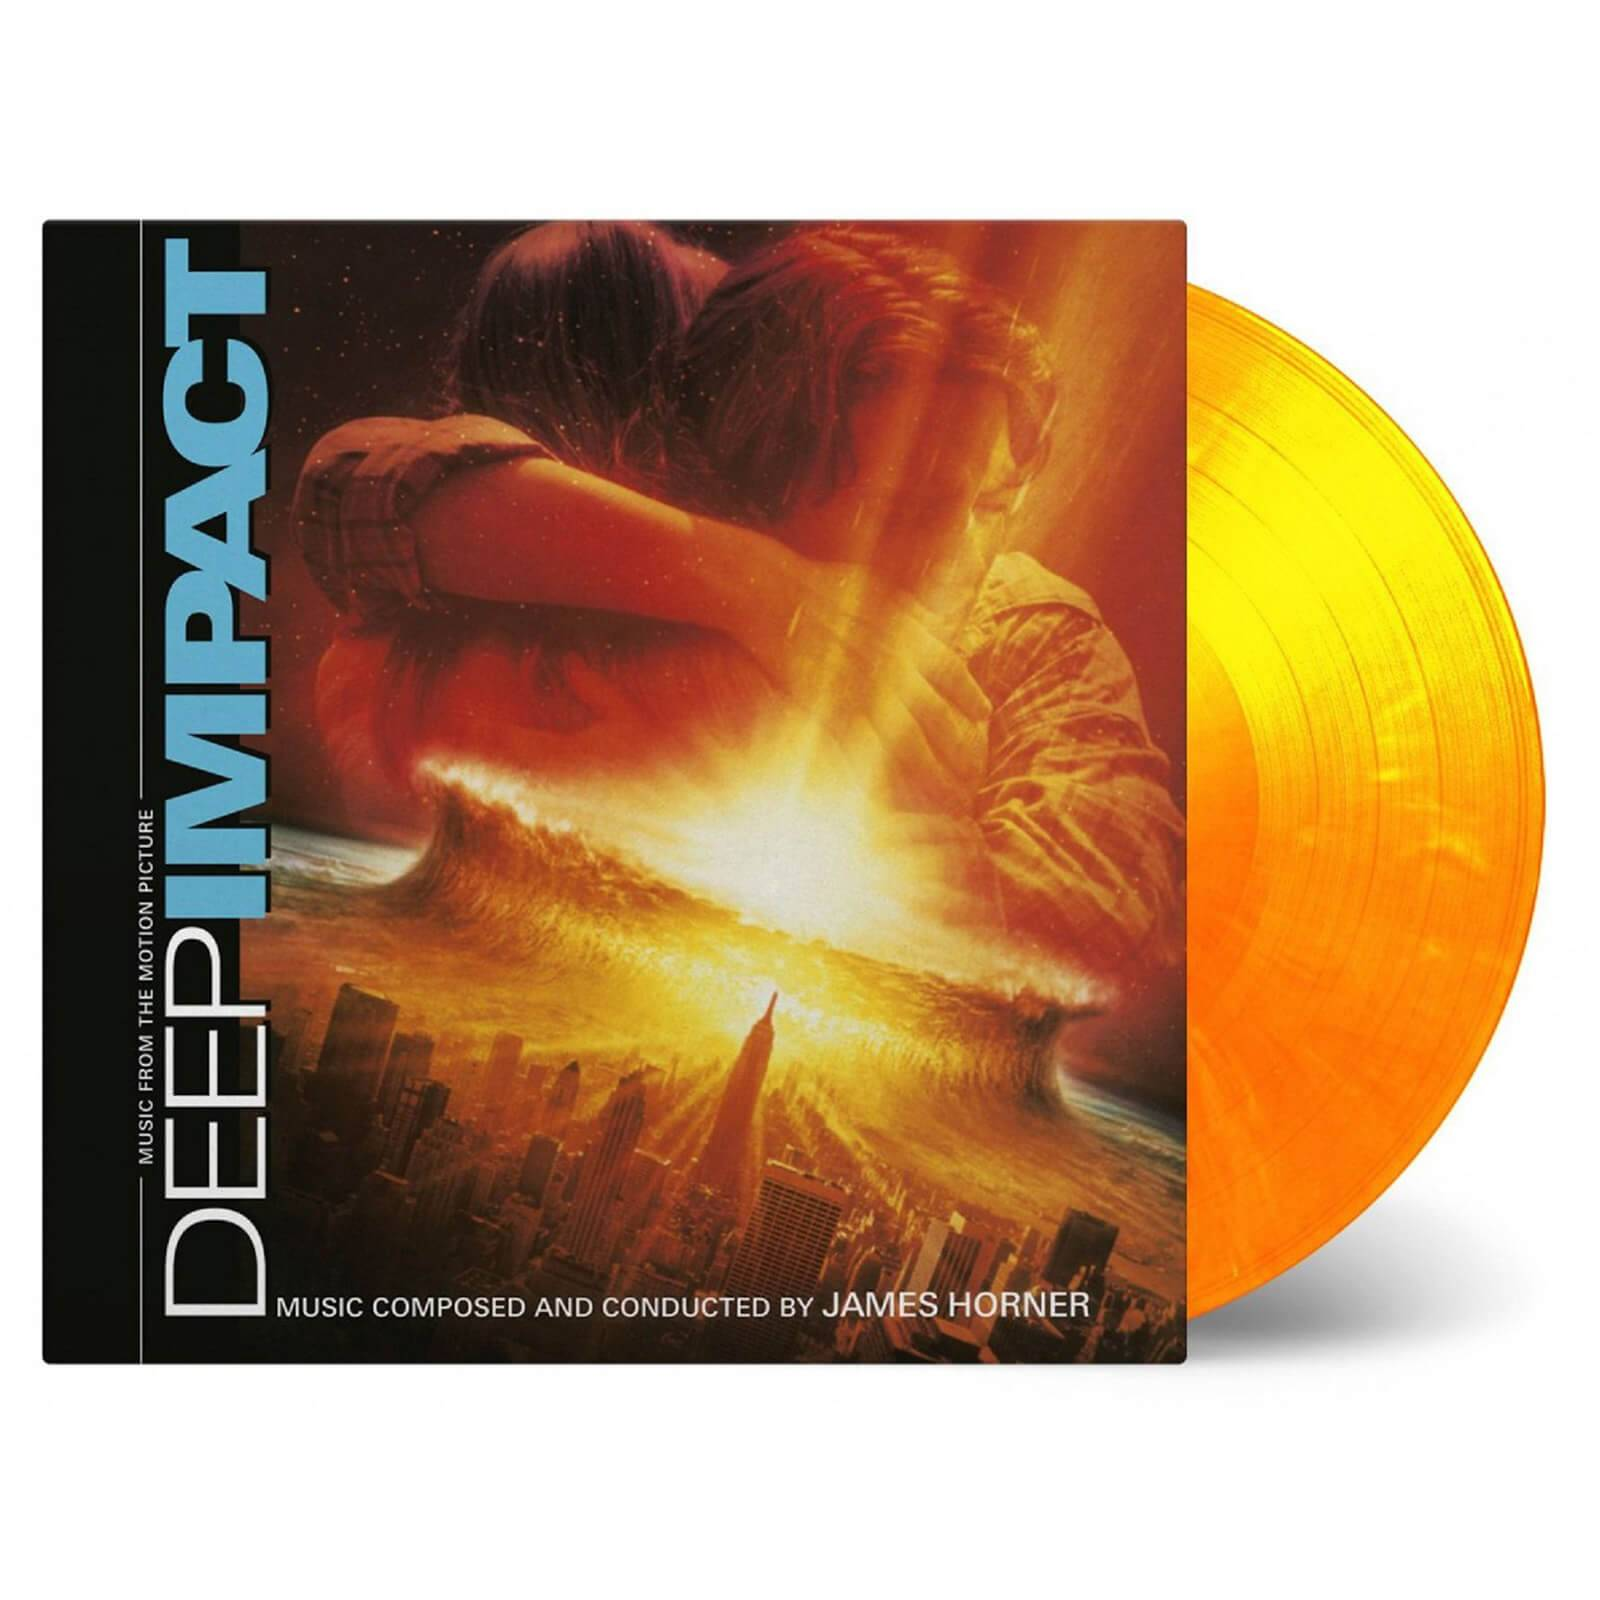 Music On Vinyl: At The Movies James Horner - Deep Impact (Soundtrack) [2LP] (LIMITED ''FLAMING'' SOLID YELLOW & SOLID ORANGE MIXED 180 Gram Audiophile Vinyl, gatefold, first time on vinyl, numbered to 750)